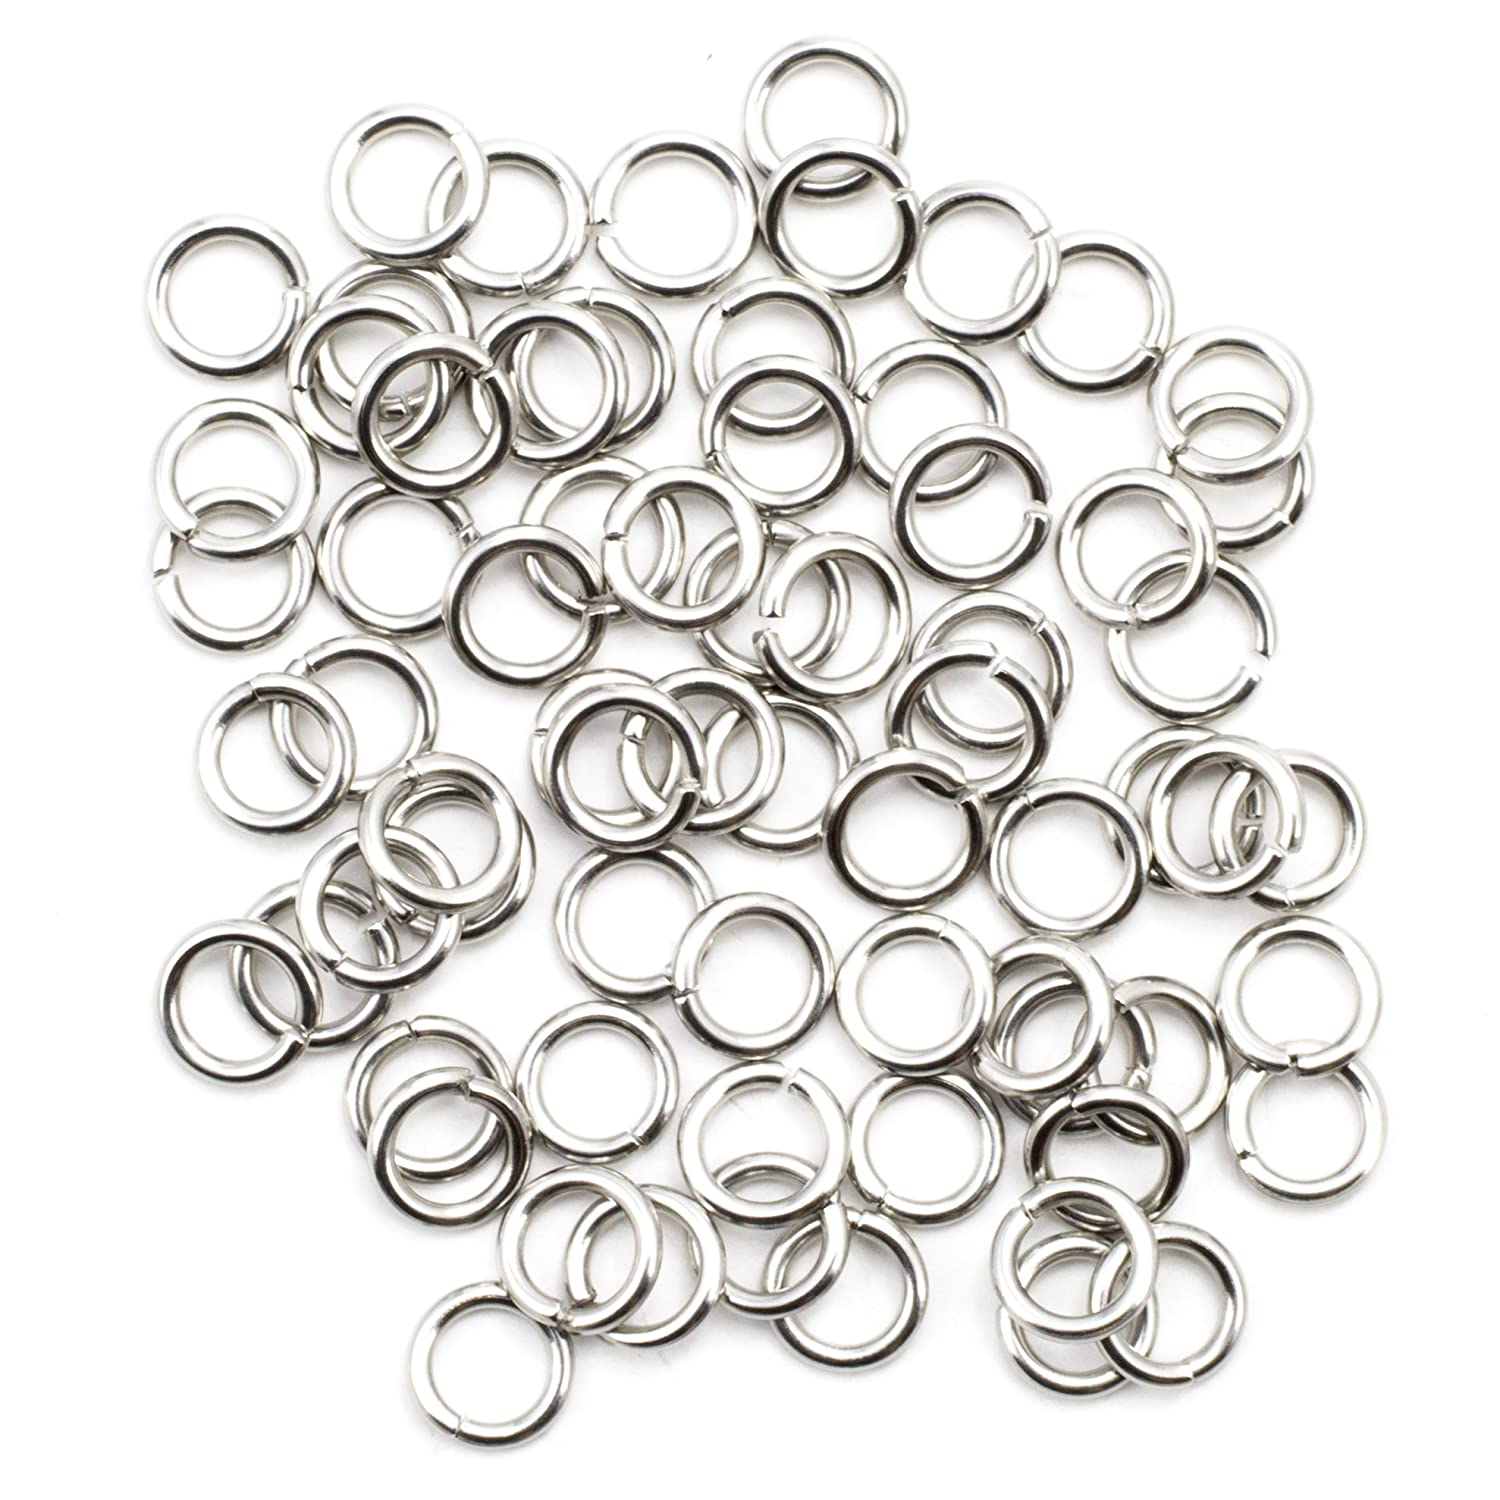 Silver 4mm Cousin 2950509 70 Piece Stainless Steel Open Jump Rings